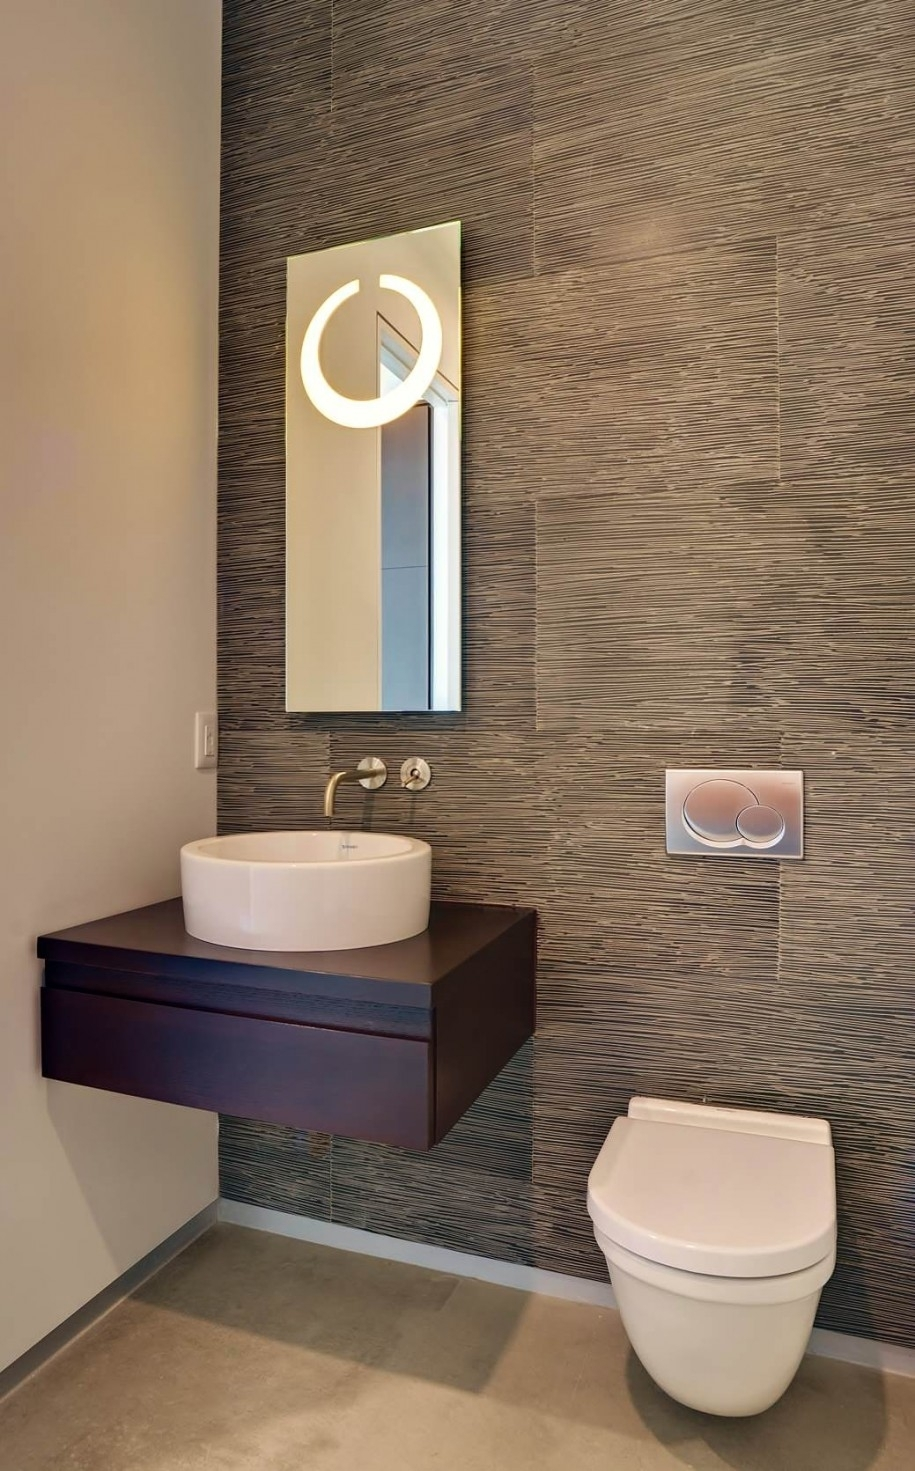 Modern Small Powder Room Design Featuring Cool Grey Wood Grain With Regard To Latest Wall Accents Behind Toilet (Gallery 13 of 15)